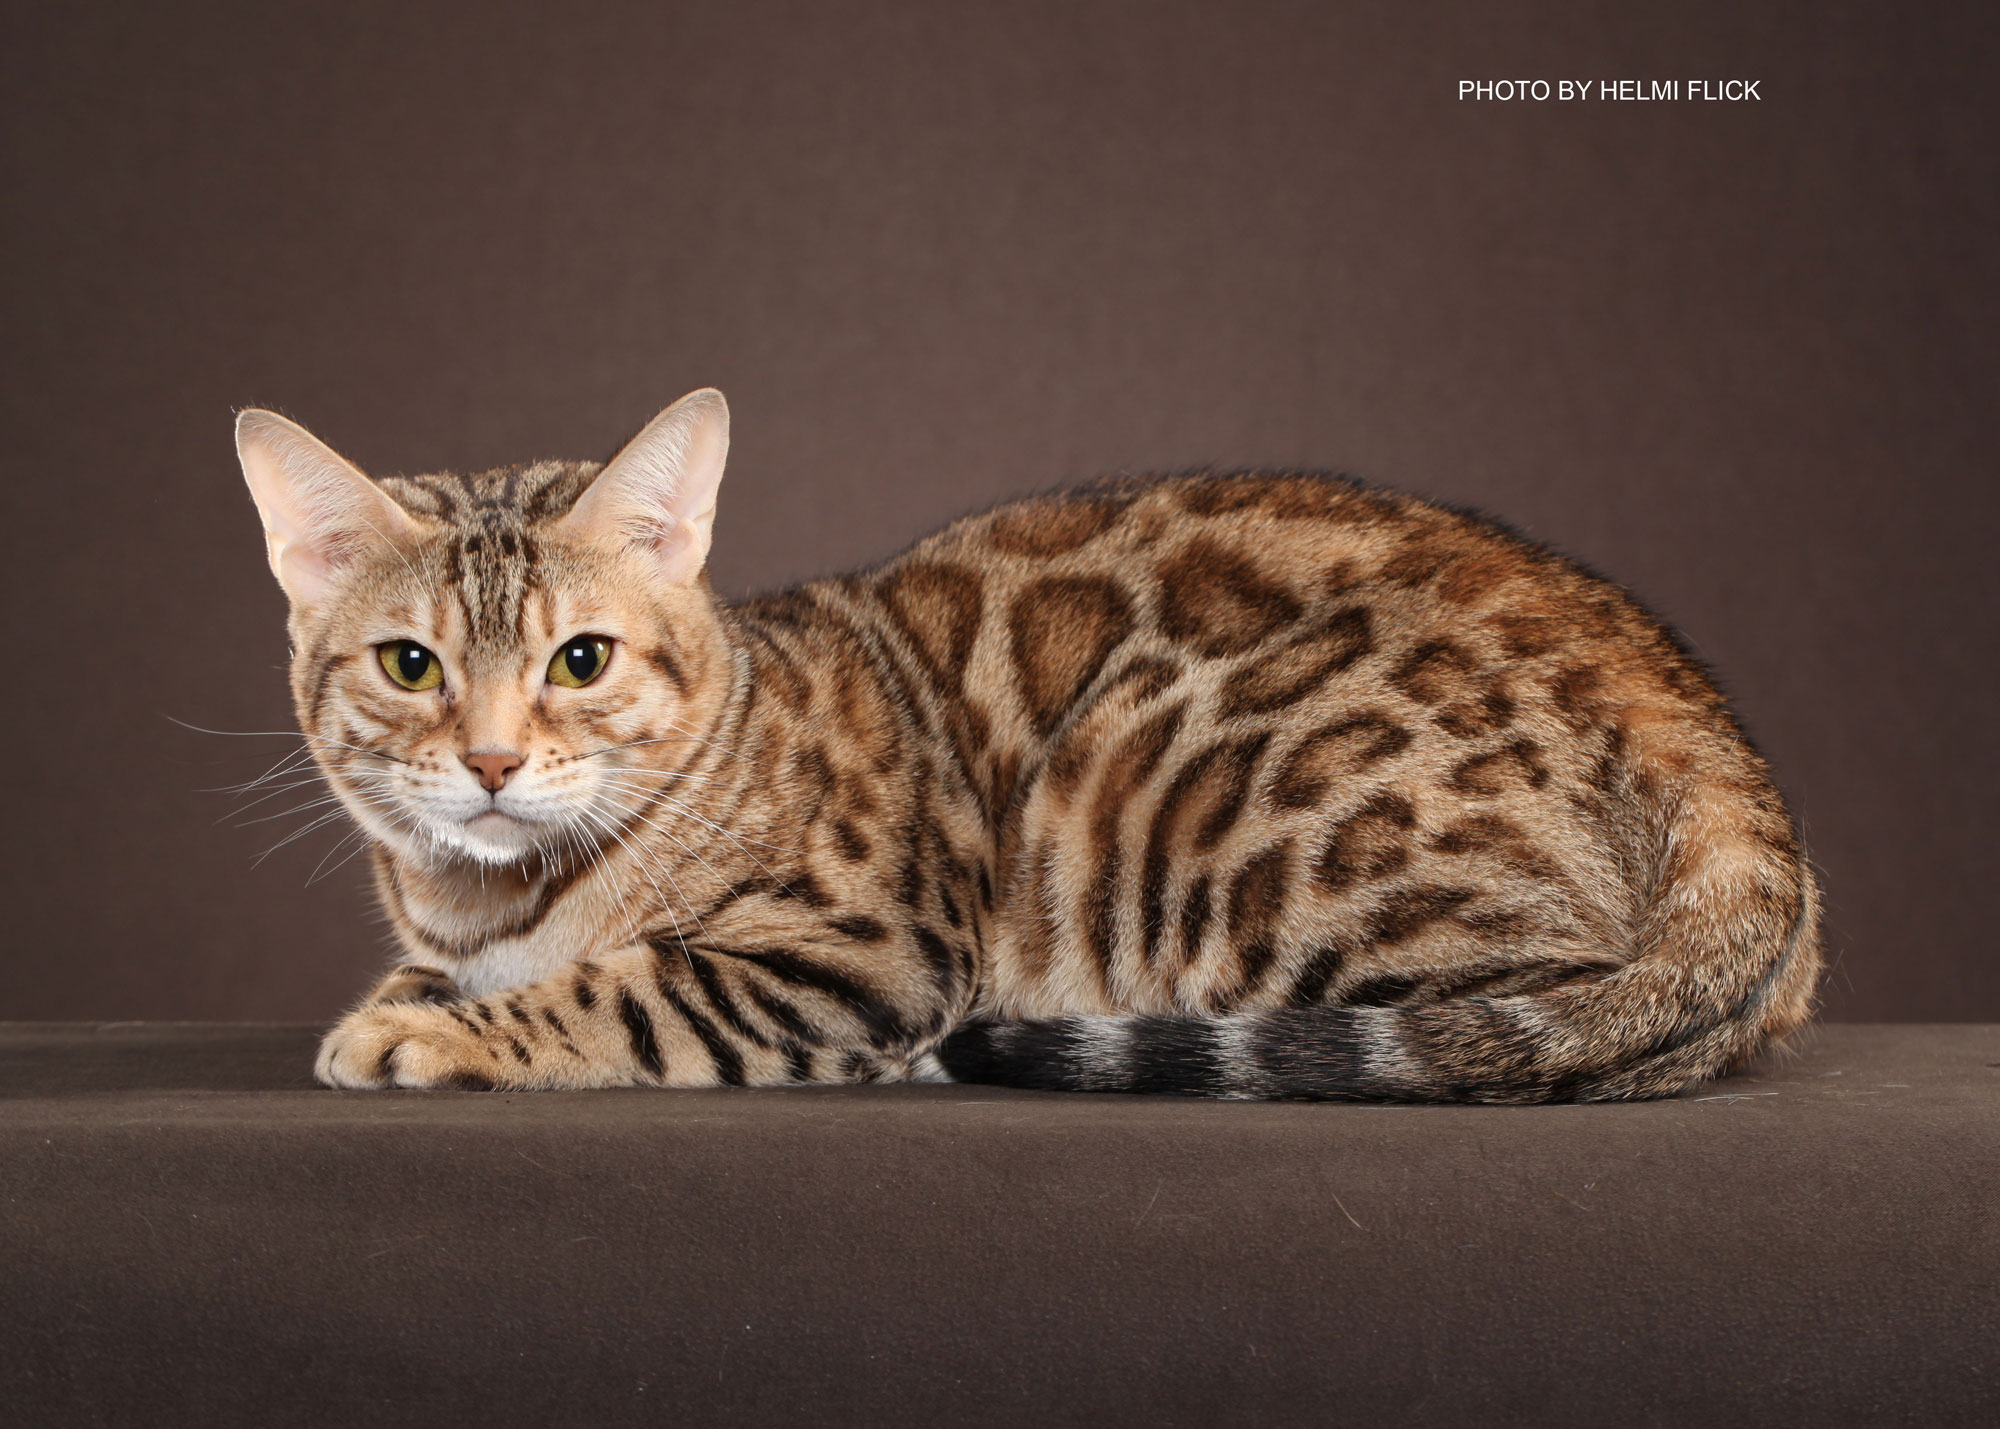 Bengal Kittens for Sale in Georgia